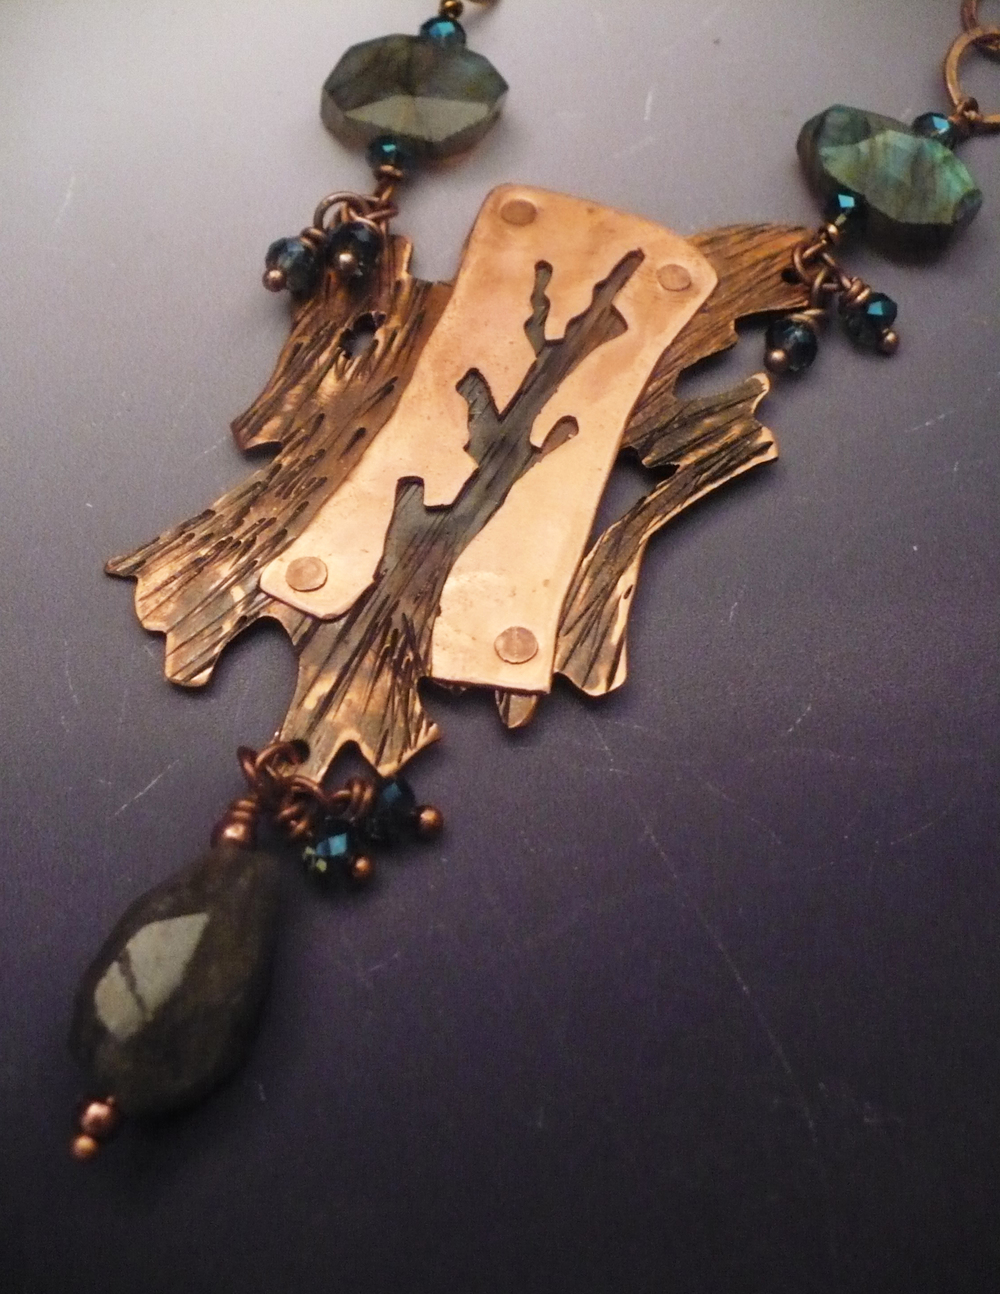 Jewelry by Allison Norfleet Bruenger